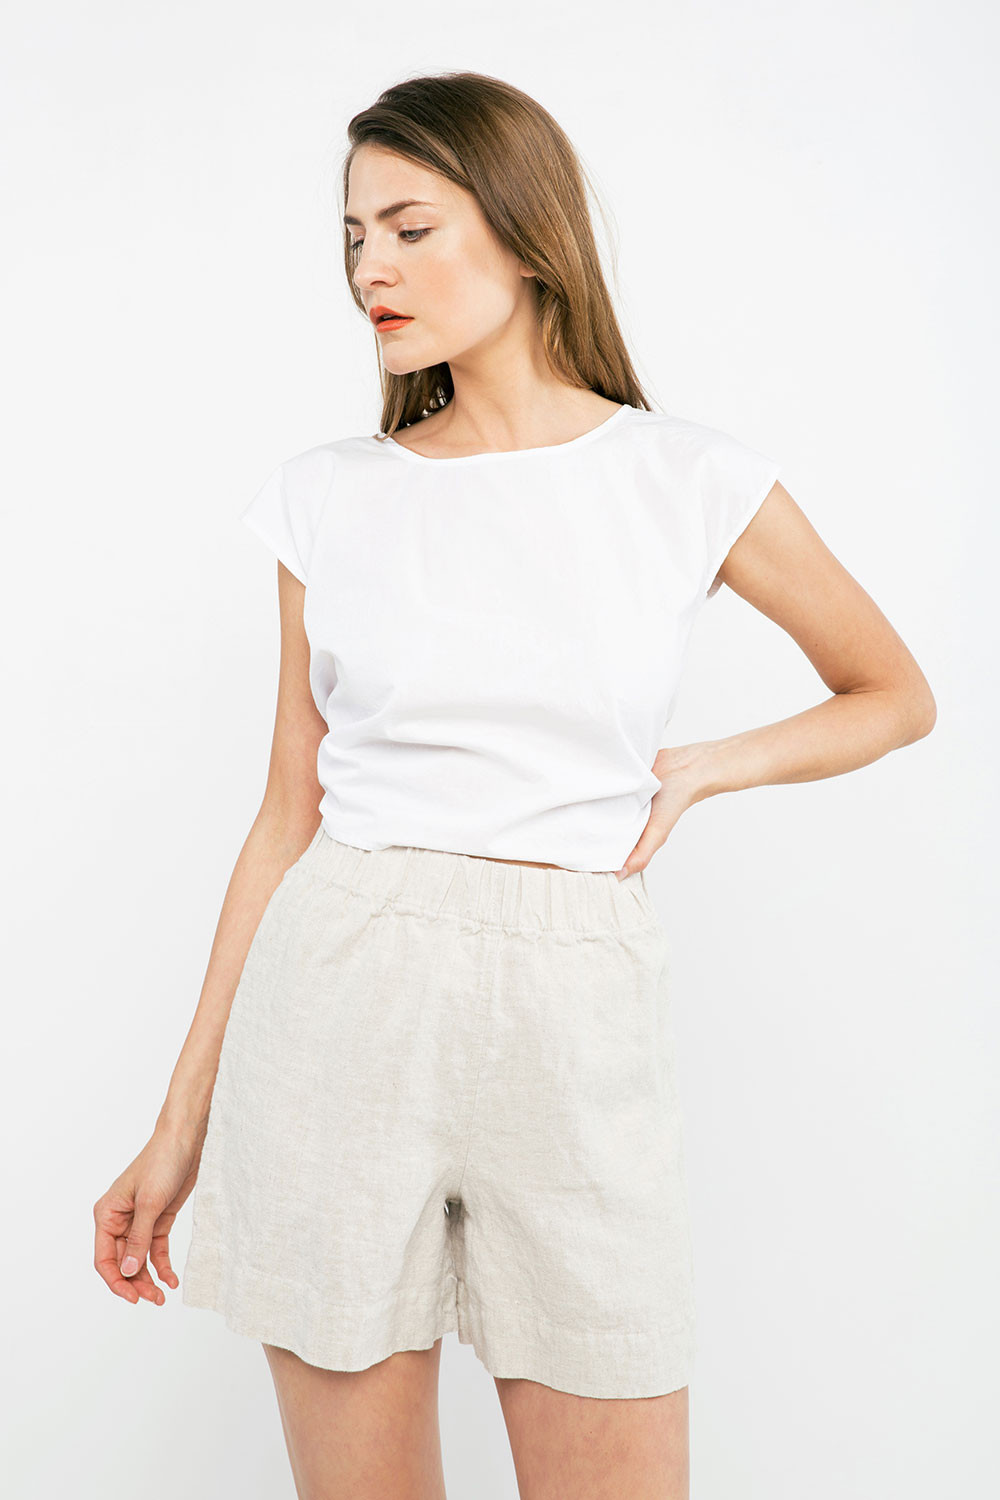 100% Linen shorts by   elizabeth suzanne